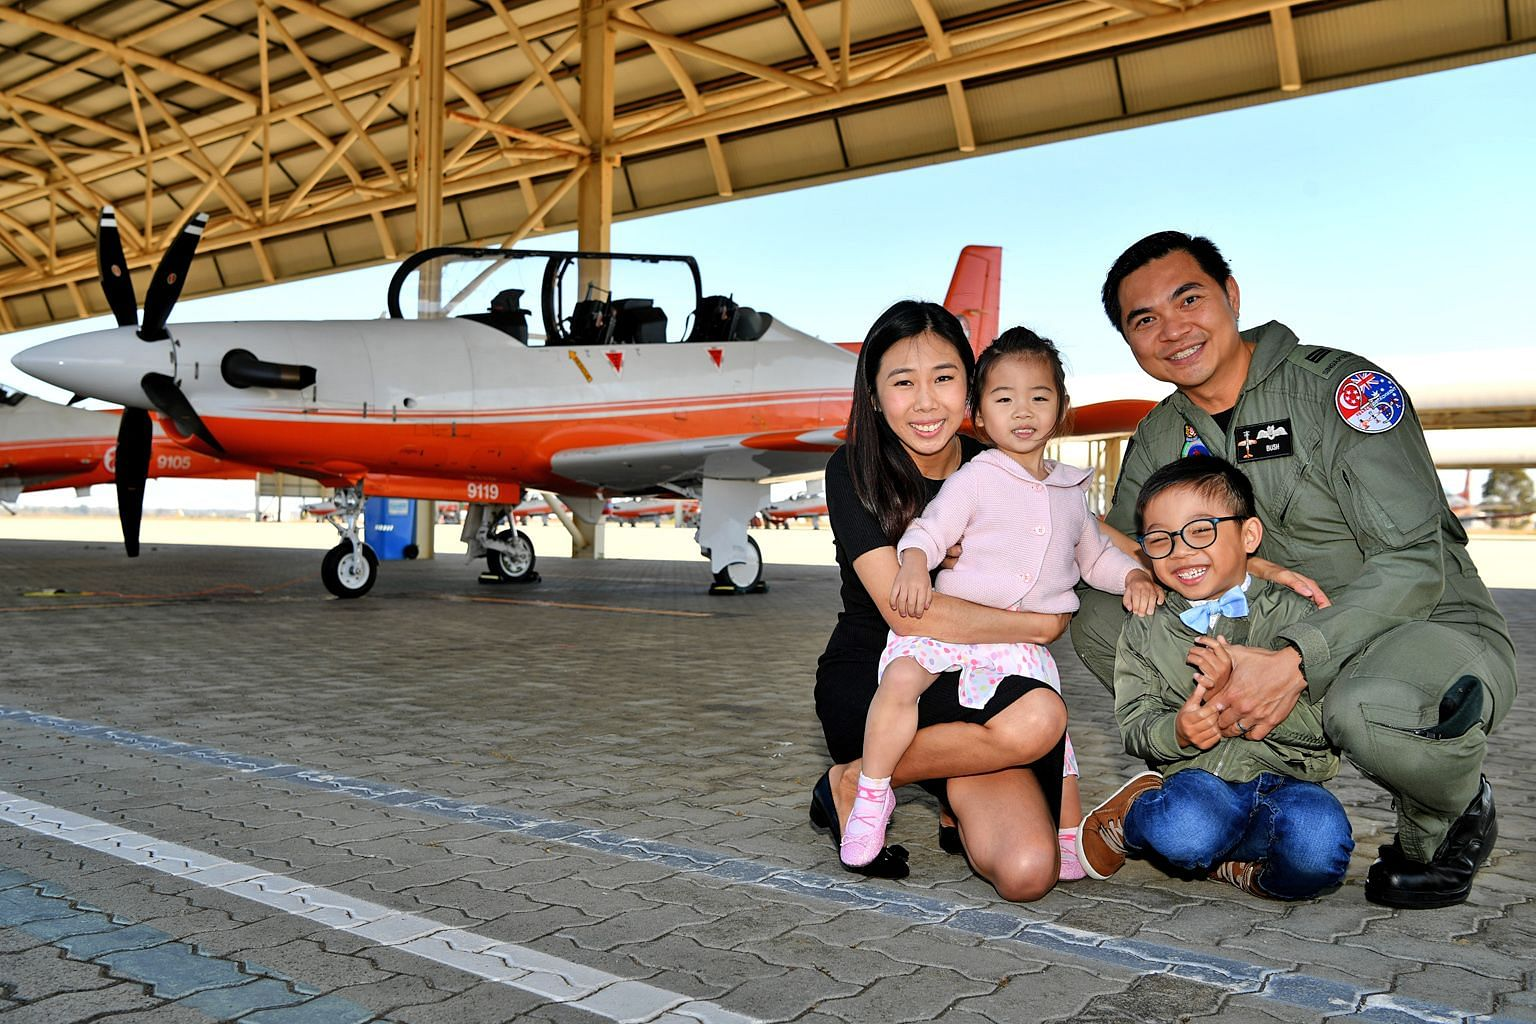 Captain Alvin Leow and his wife Mindy Poh with their daughter Reanne and son Reyes in Perth, Australia. In the background is the PC-21 aircraft.